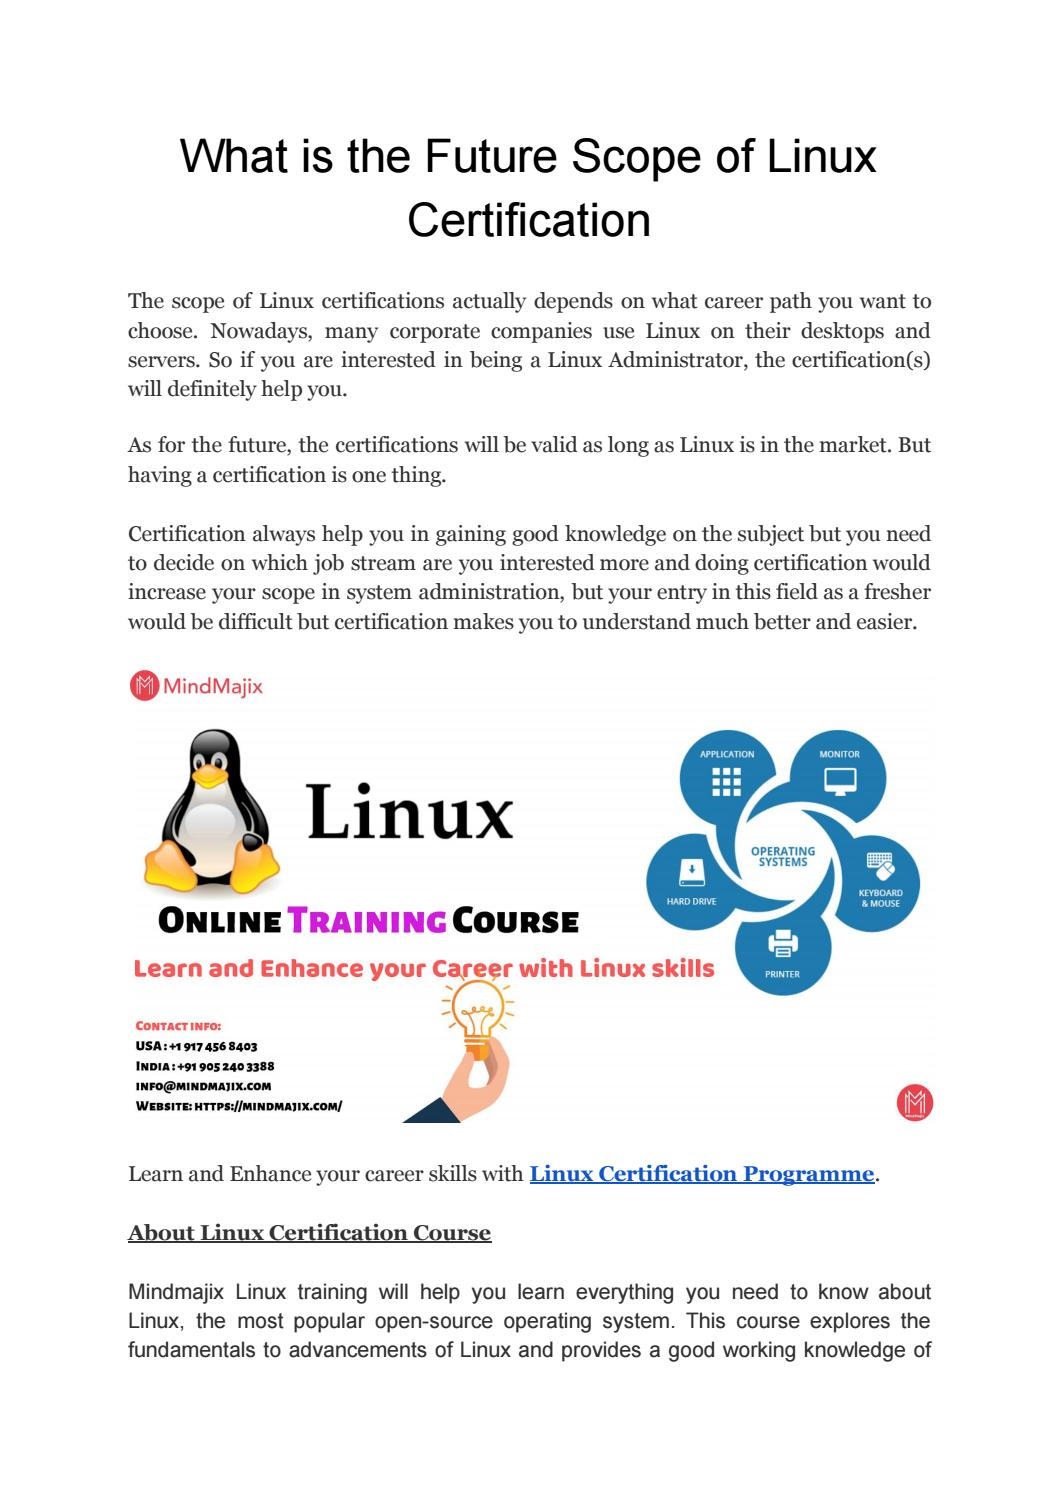 Linux Certification Training and Future Career Scope for